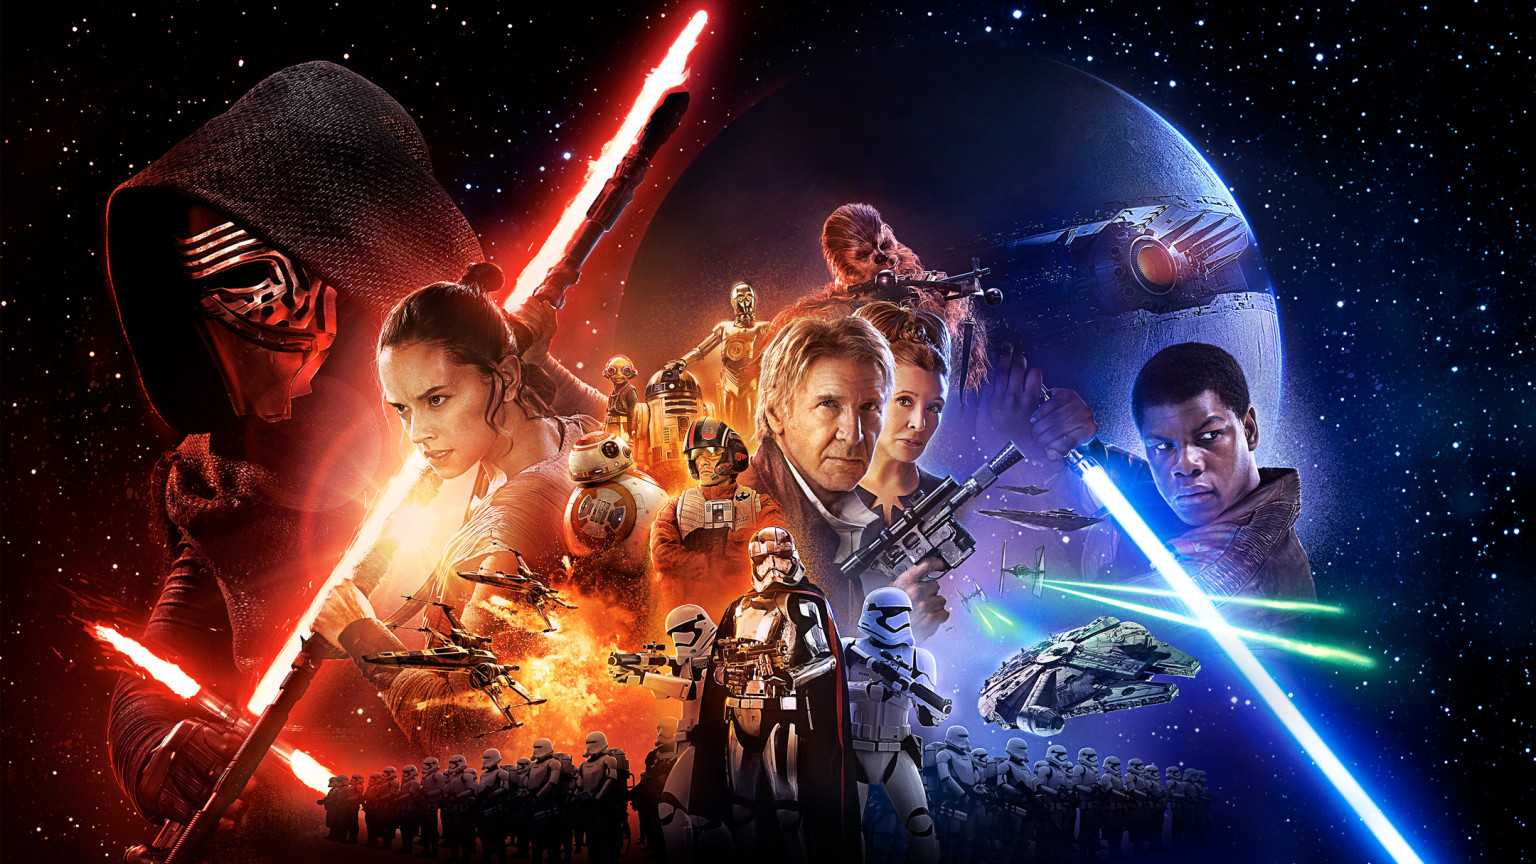 Perfect Star Wars: The Force Awakens Theatrical Poster First Look, In Theater  Exclusives And More | StarWars.com